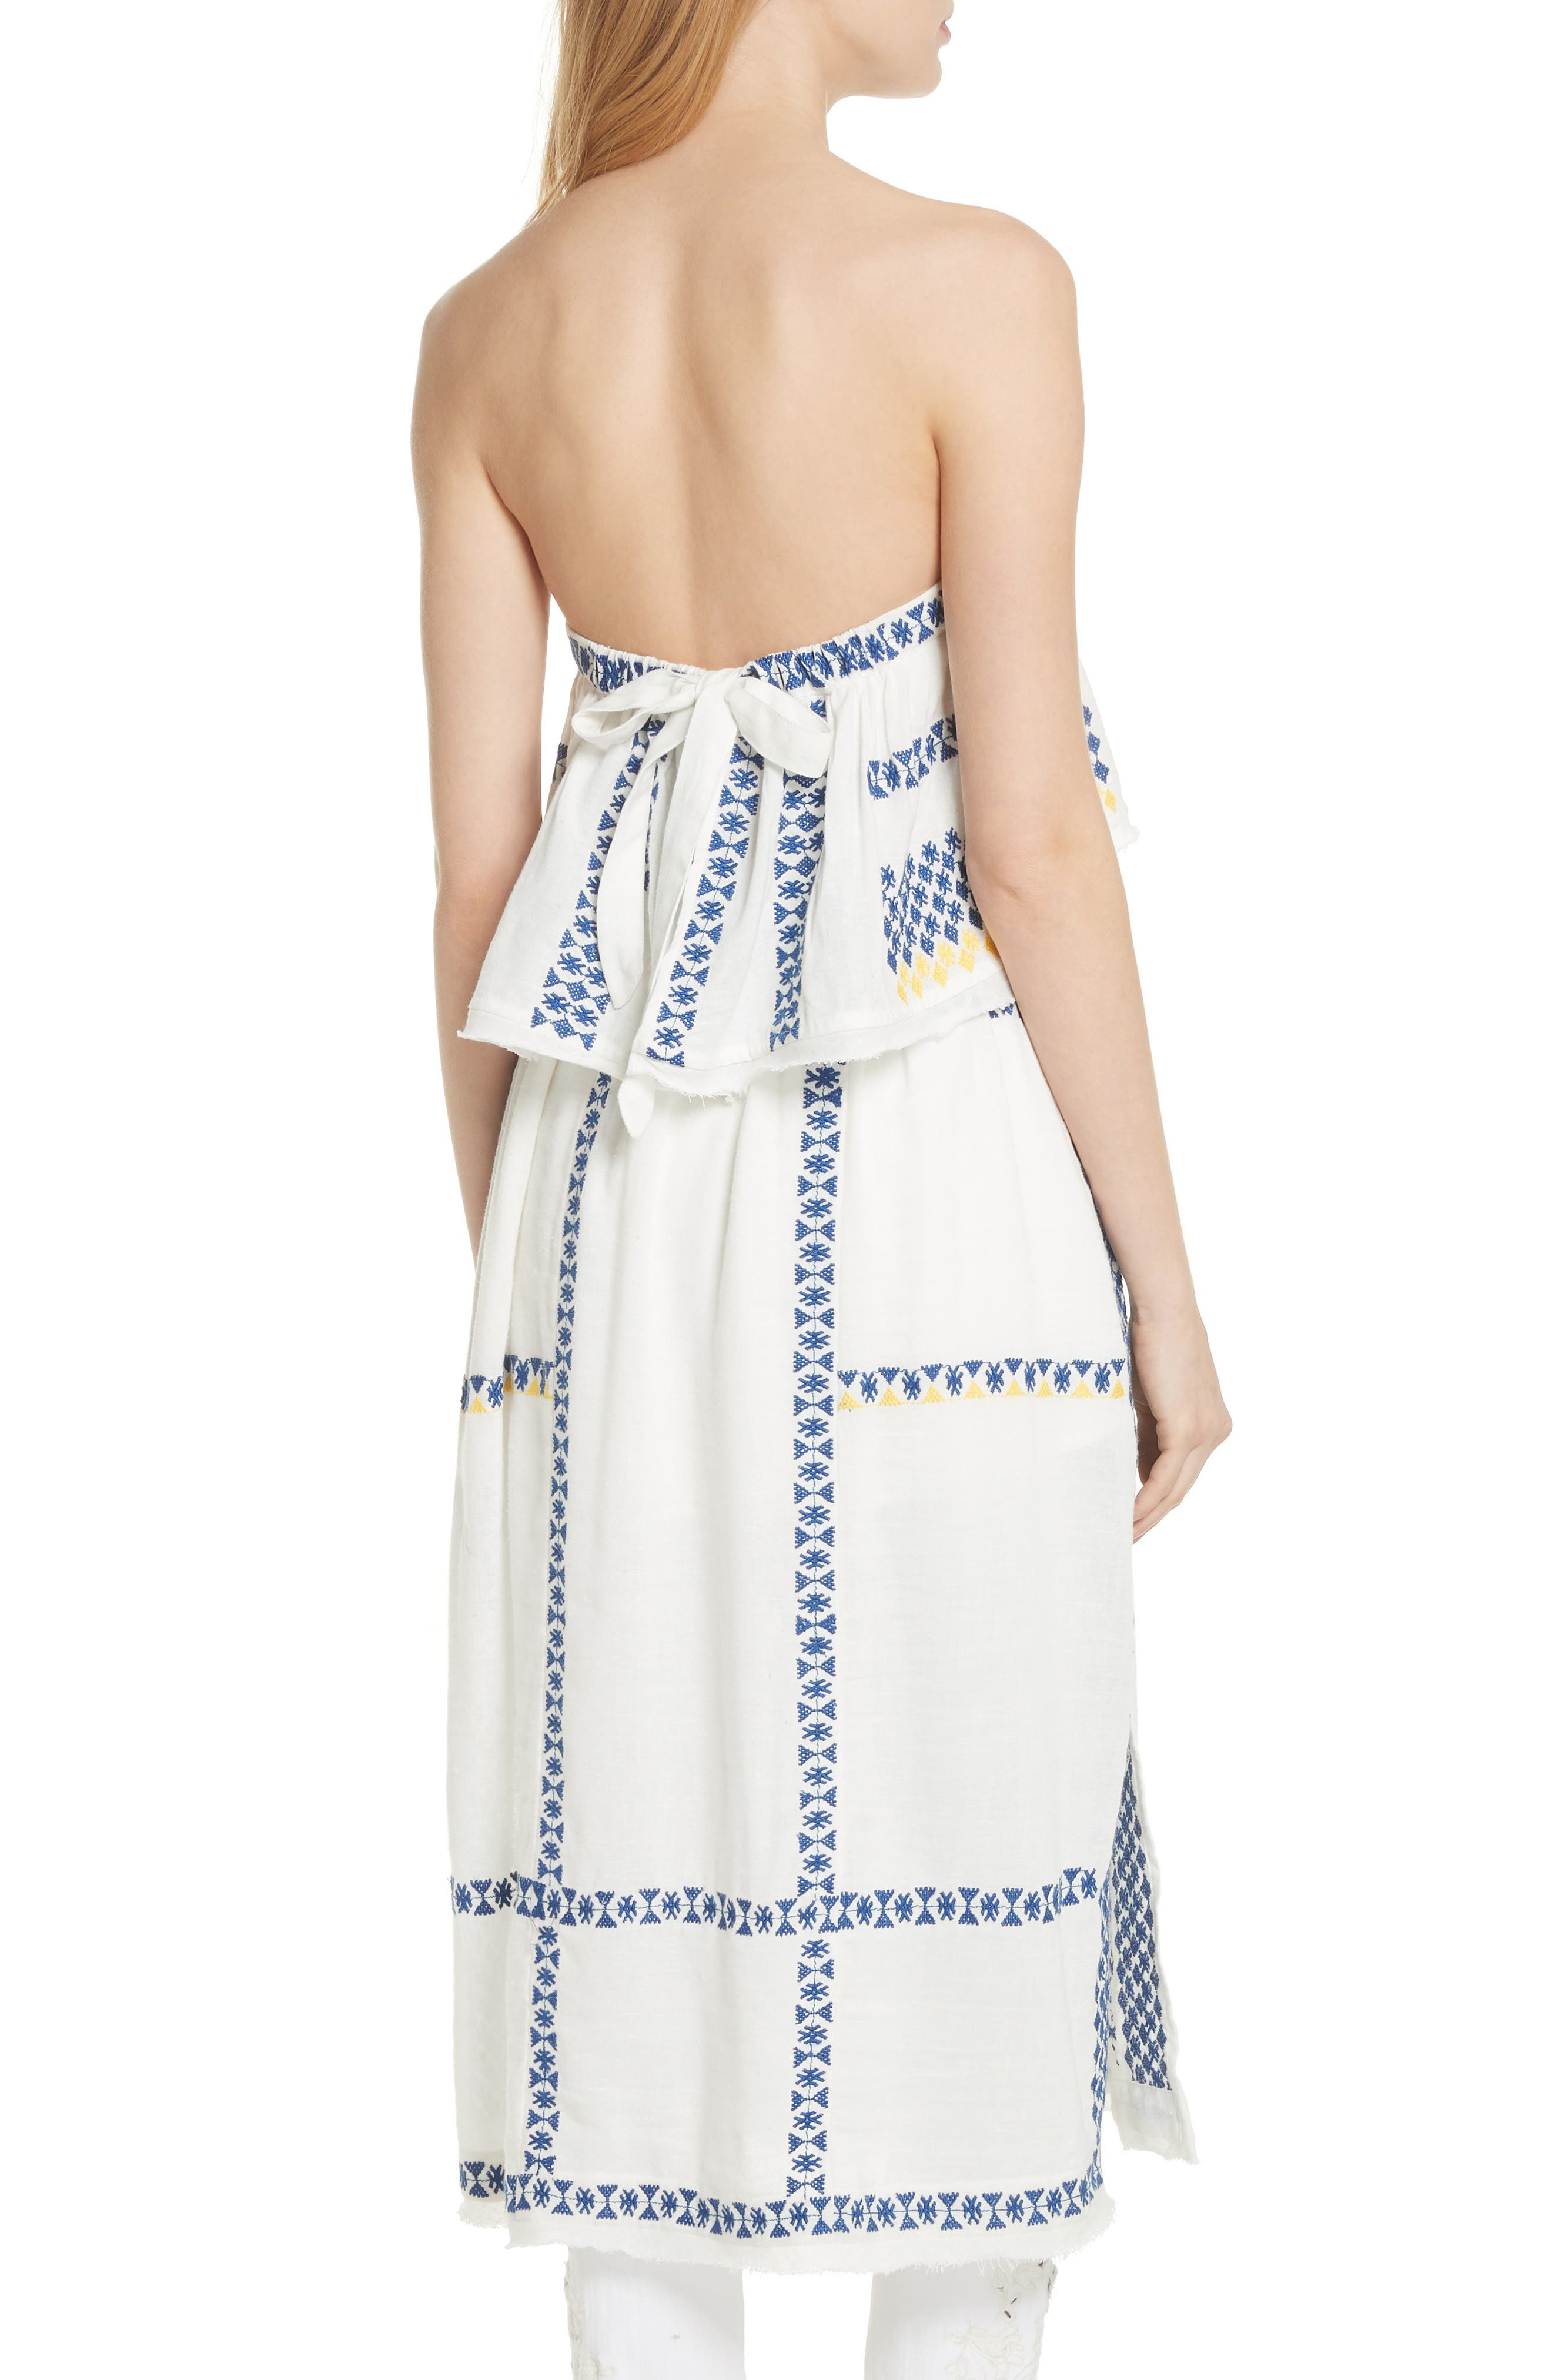 Wild Romance Embroidered Dress,                             Alternate thumbnail 2, color,